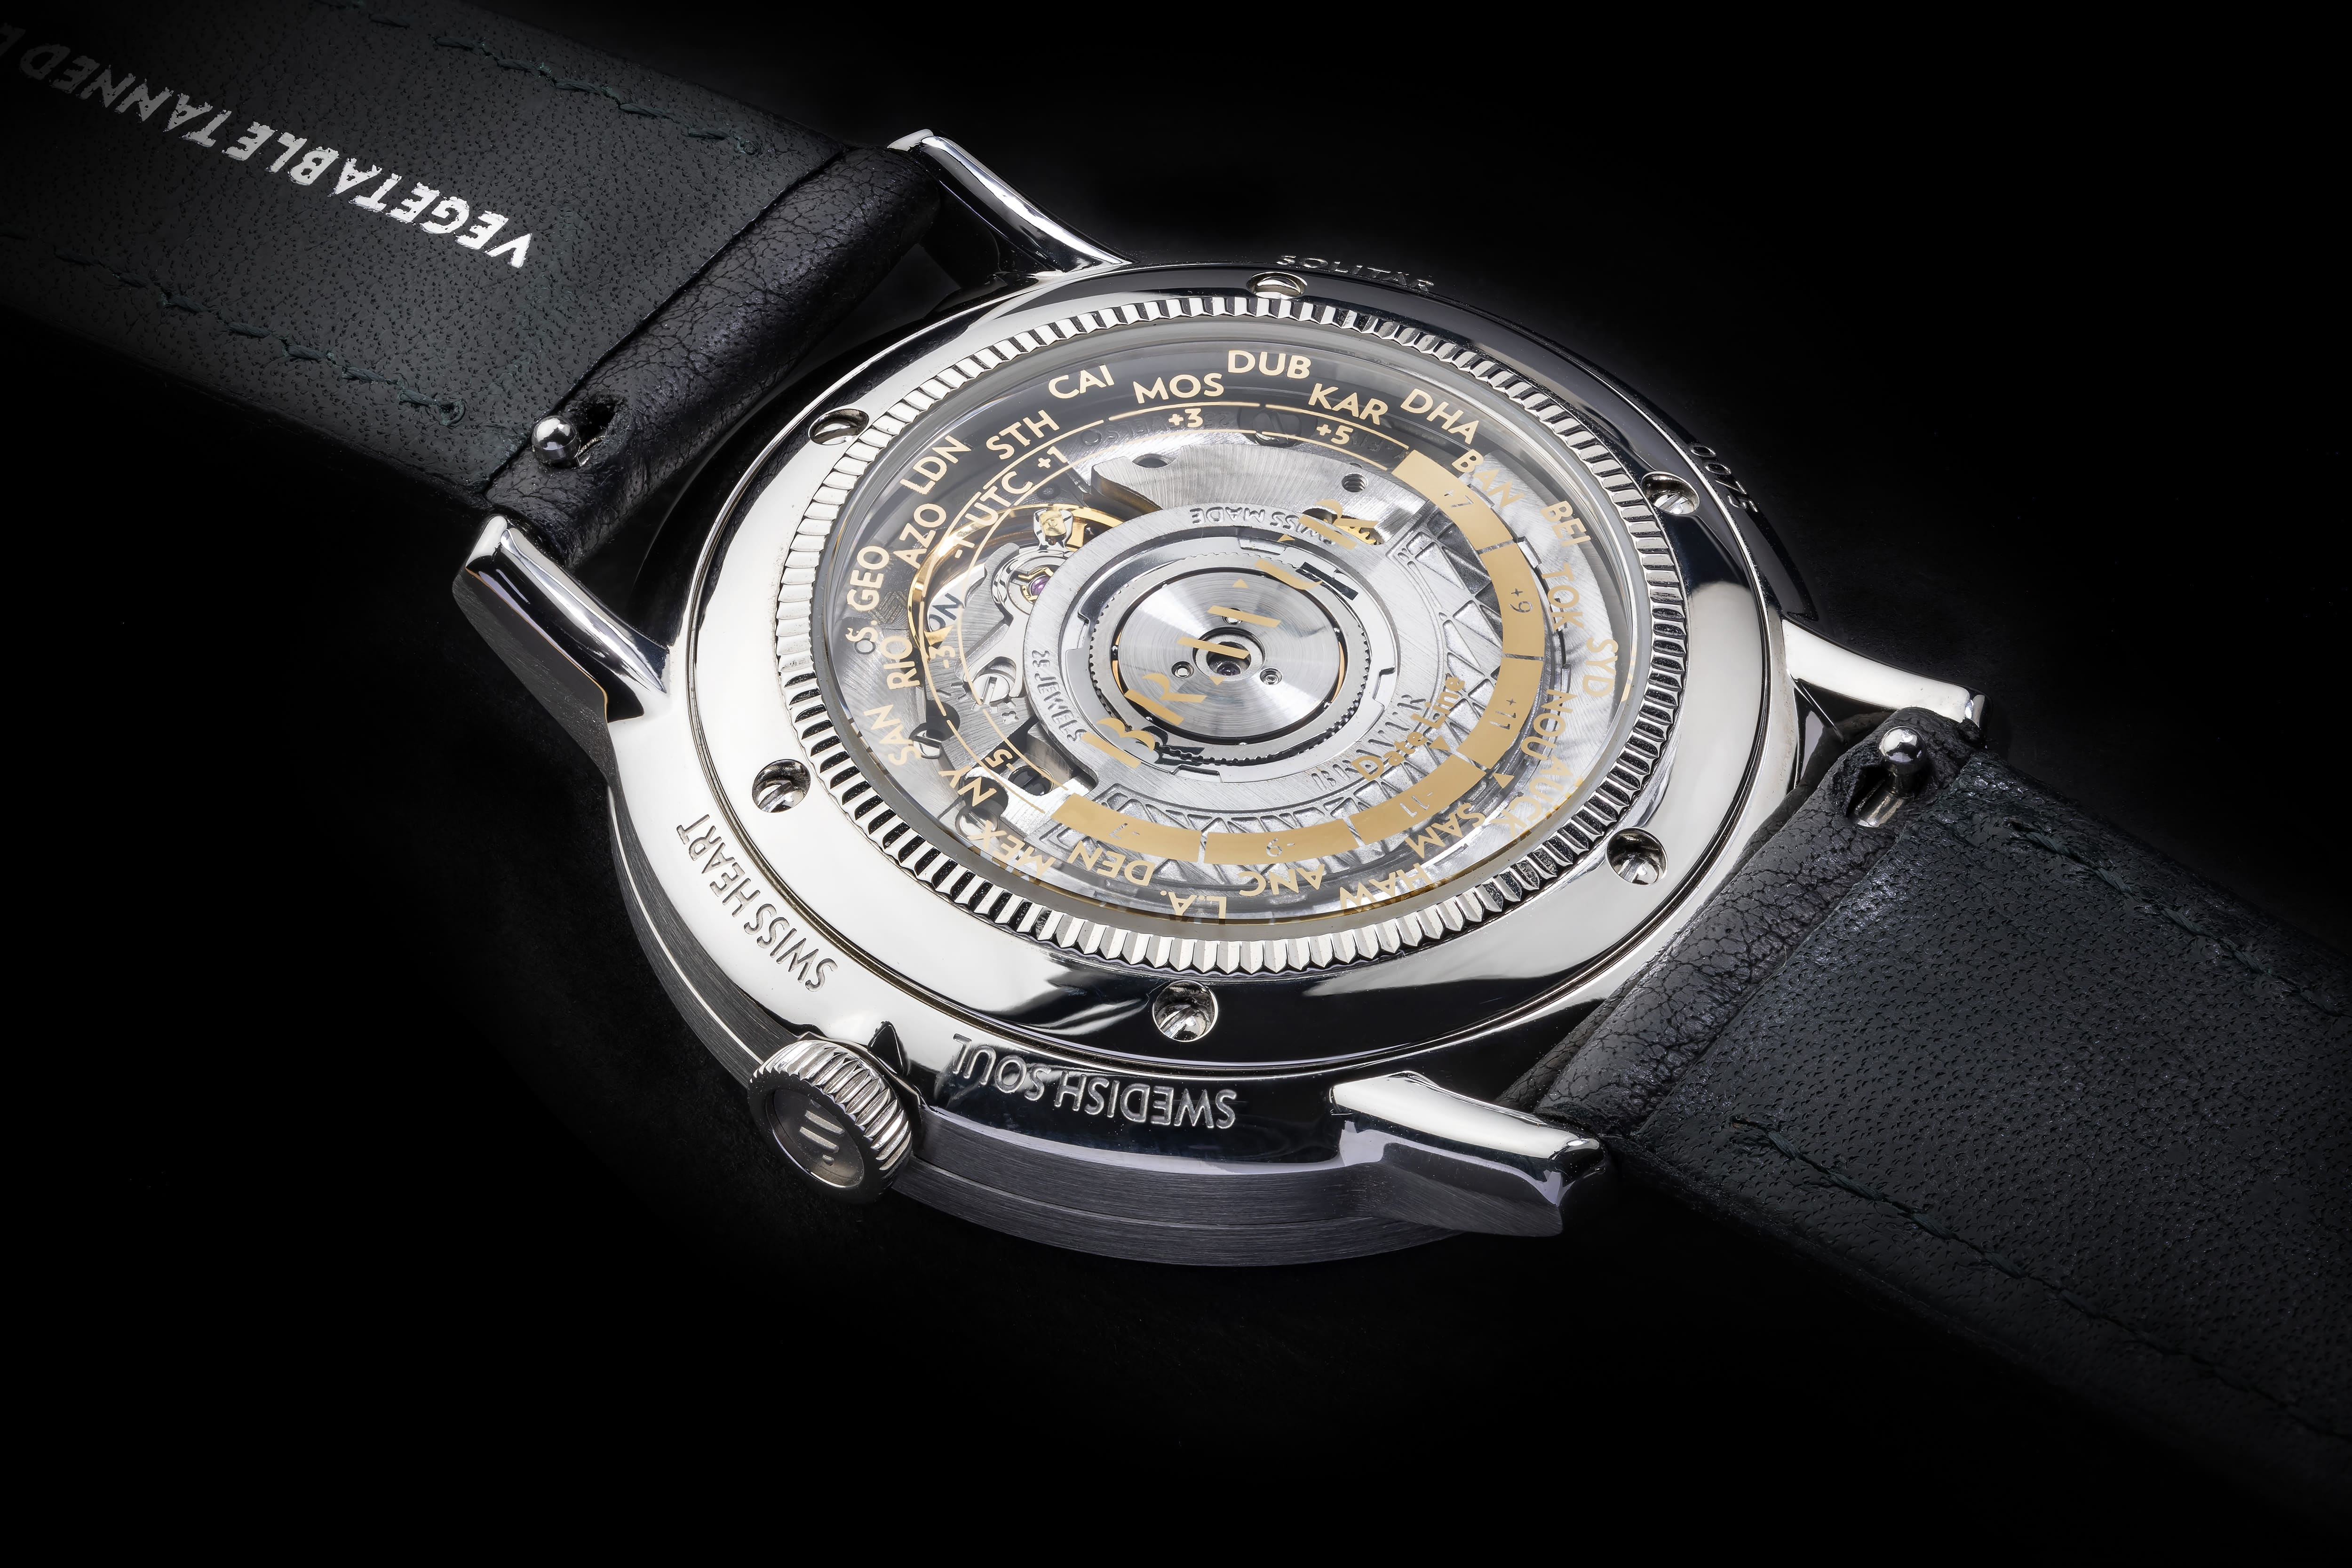 bravur watches movement